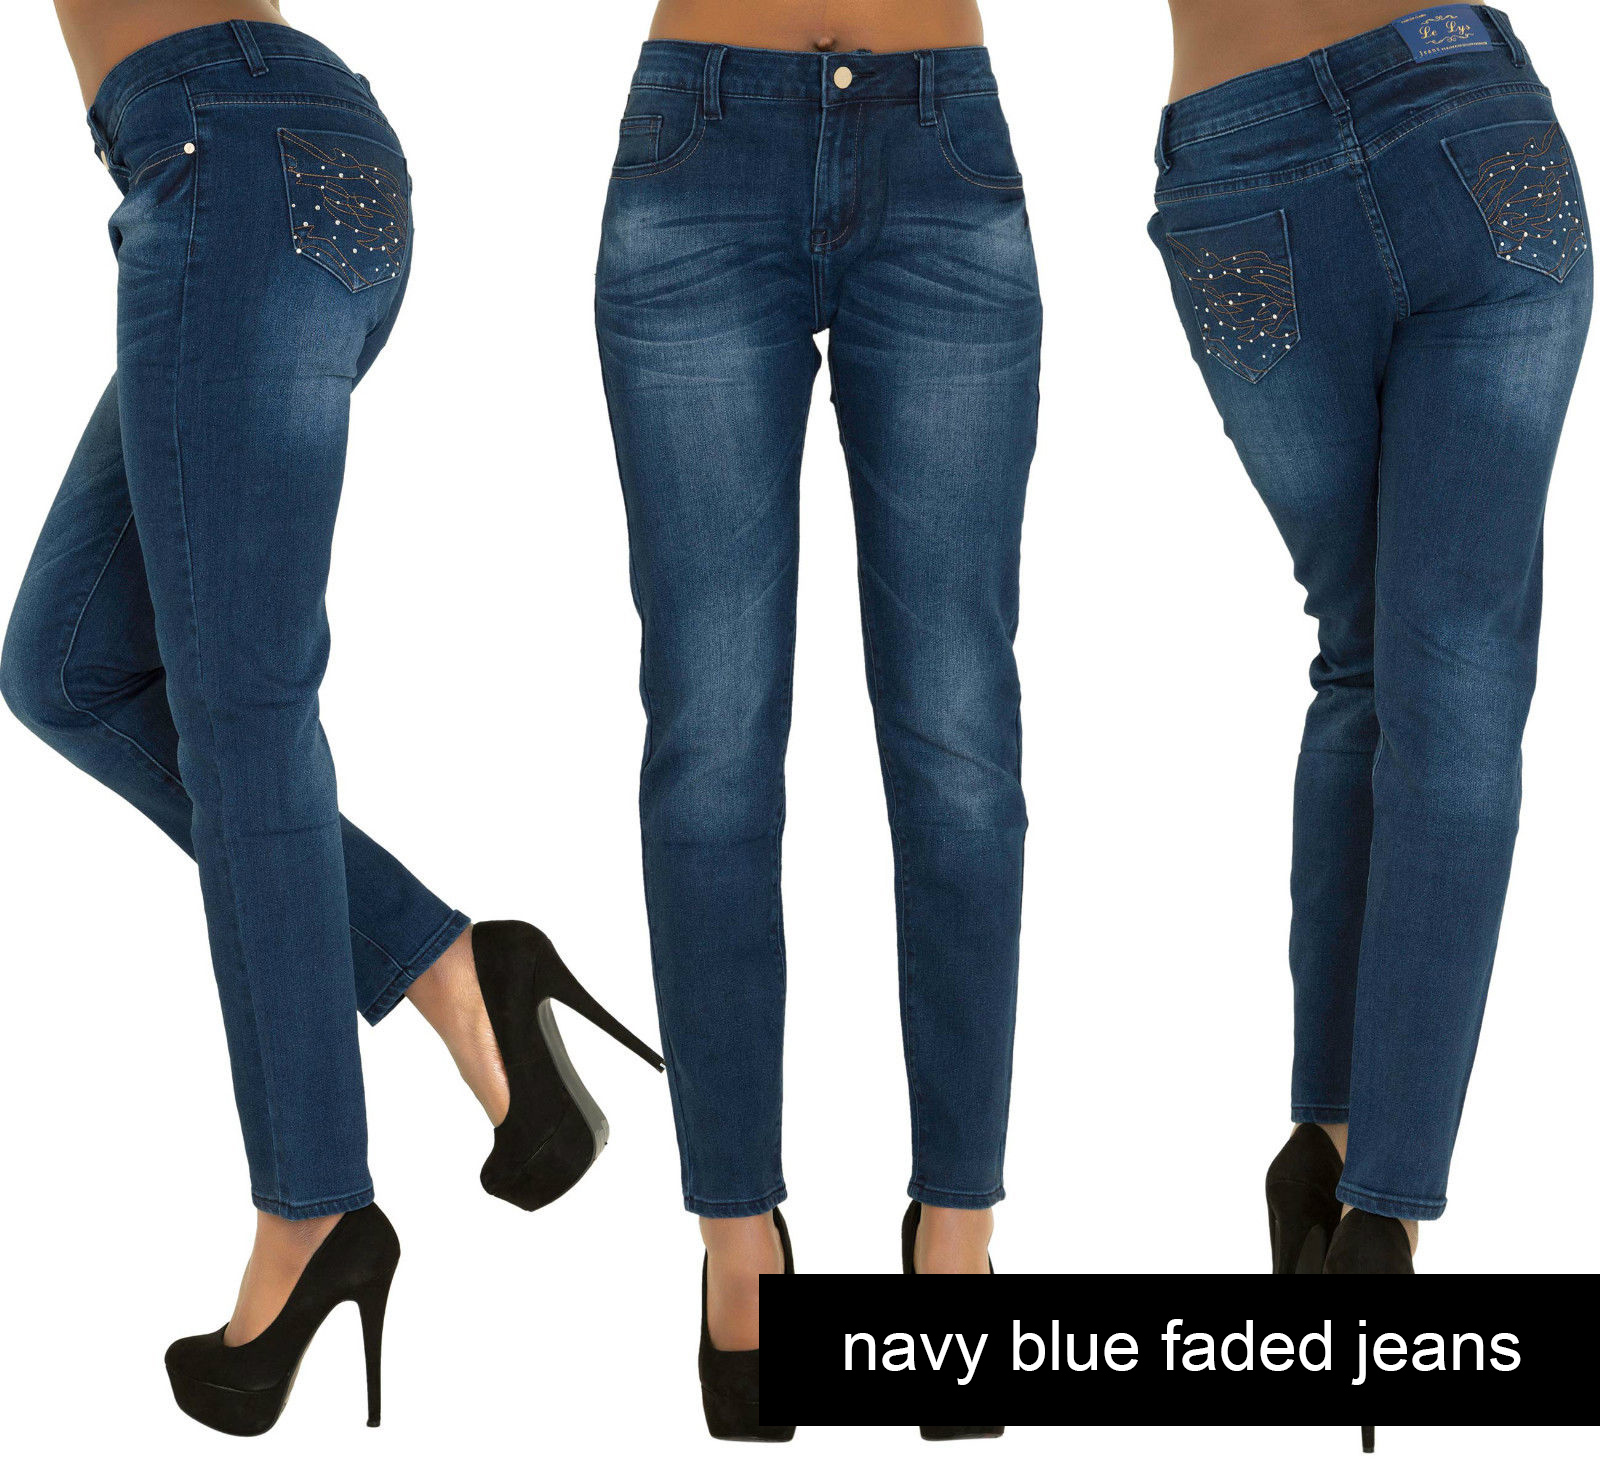 how to guide to measure your jeans size and many easy to use size charts for US, European and International jeans sizes. Plus a calculator to convert a standard pant size to a jeans size. For women's jeans sizes and men's jeans sizes. Plus many infos on the different types of jeans and jeans cuts.